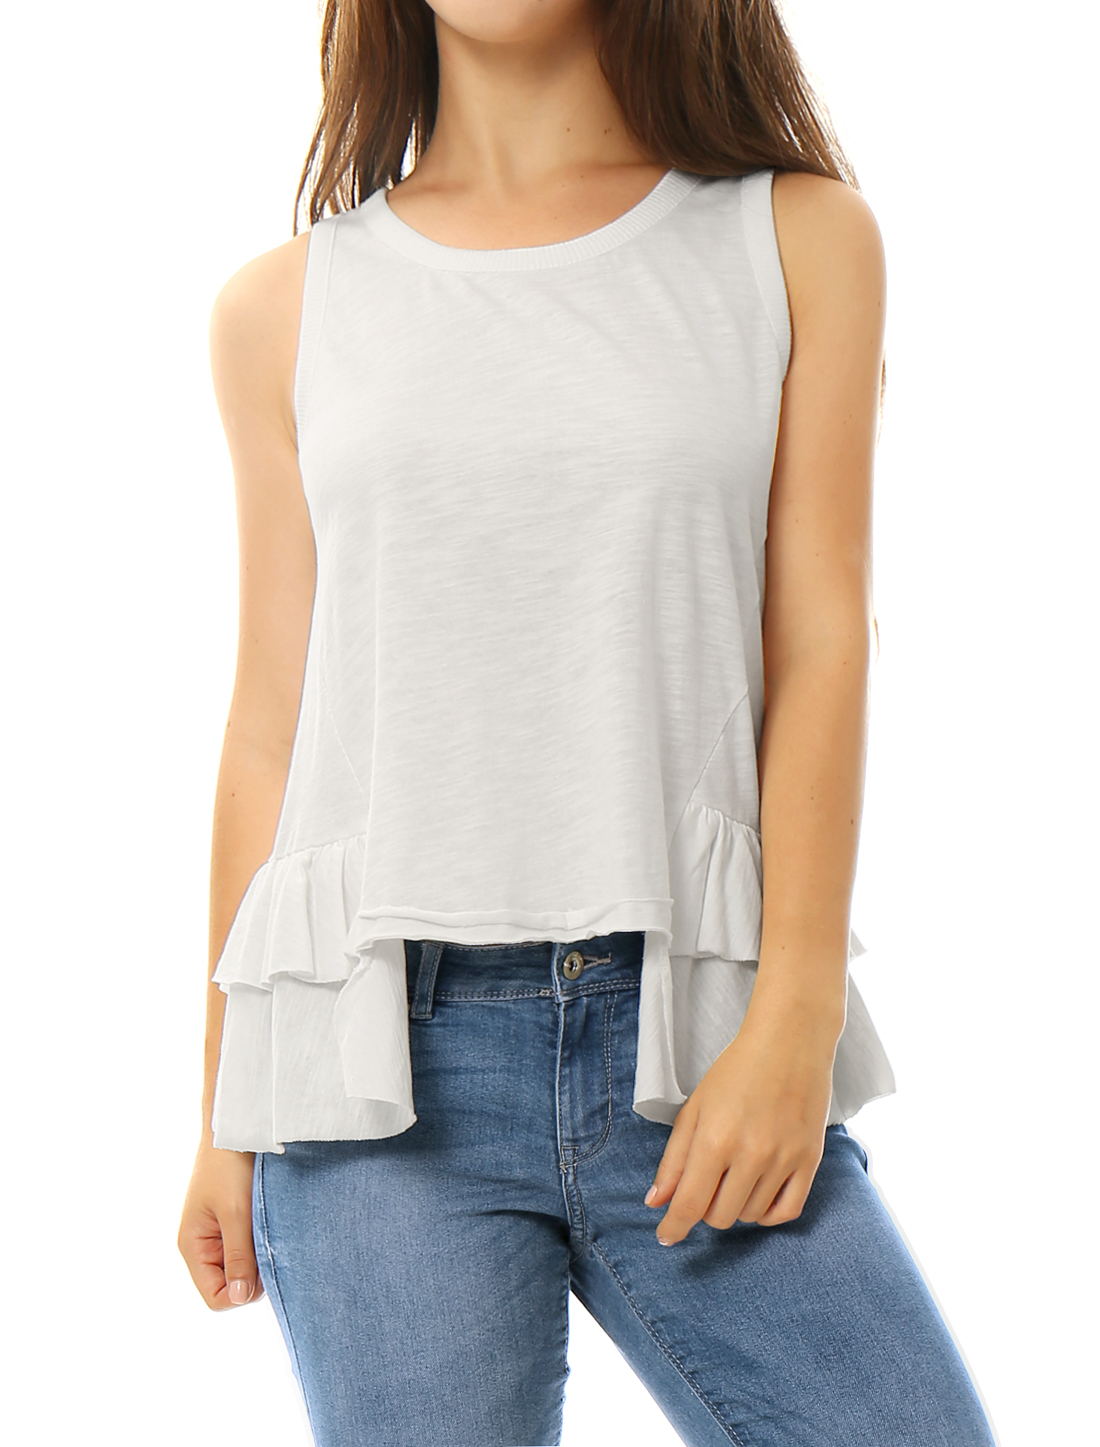 Women Scoop Neckline Layered Ruffle Hem Tank Top White L